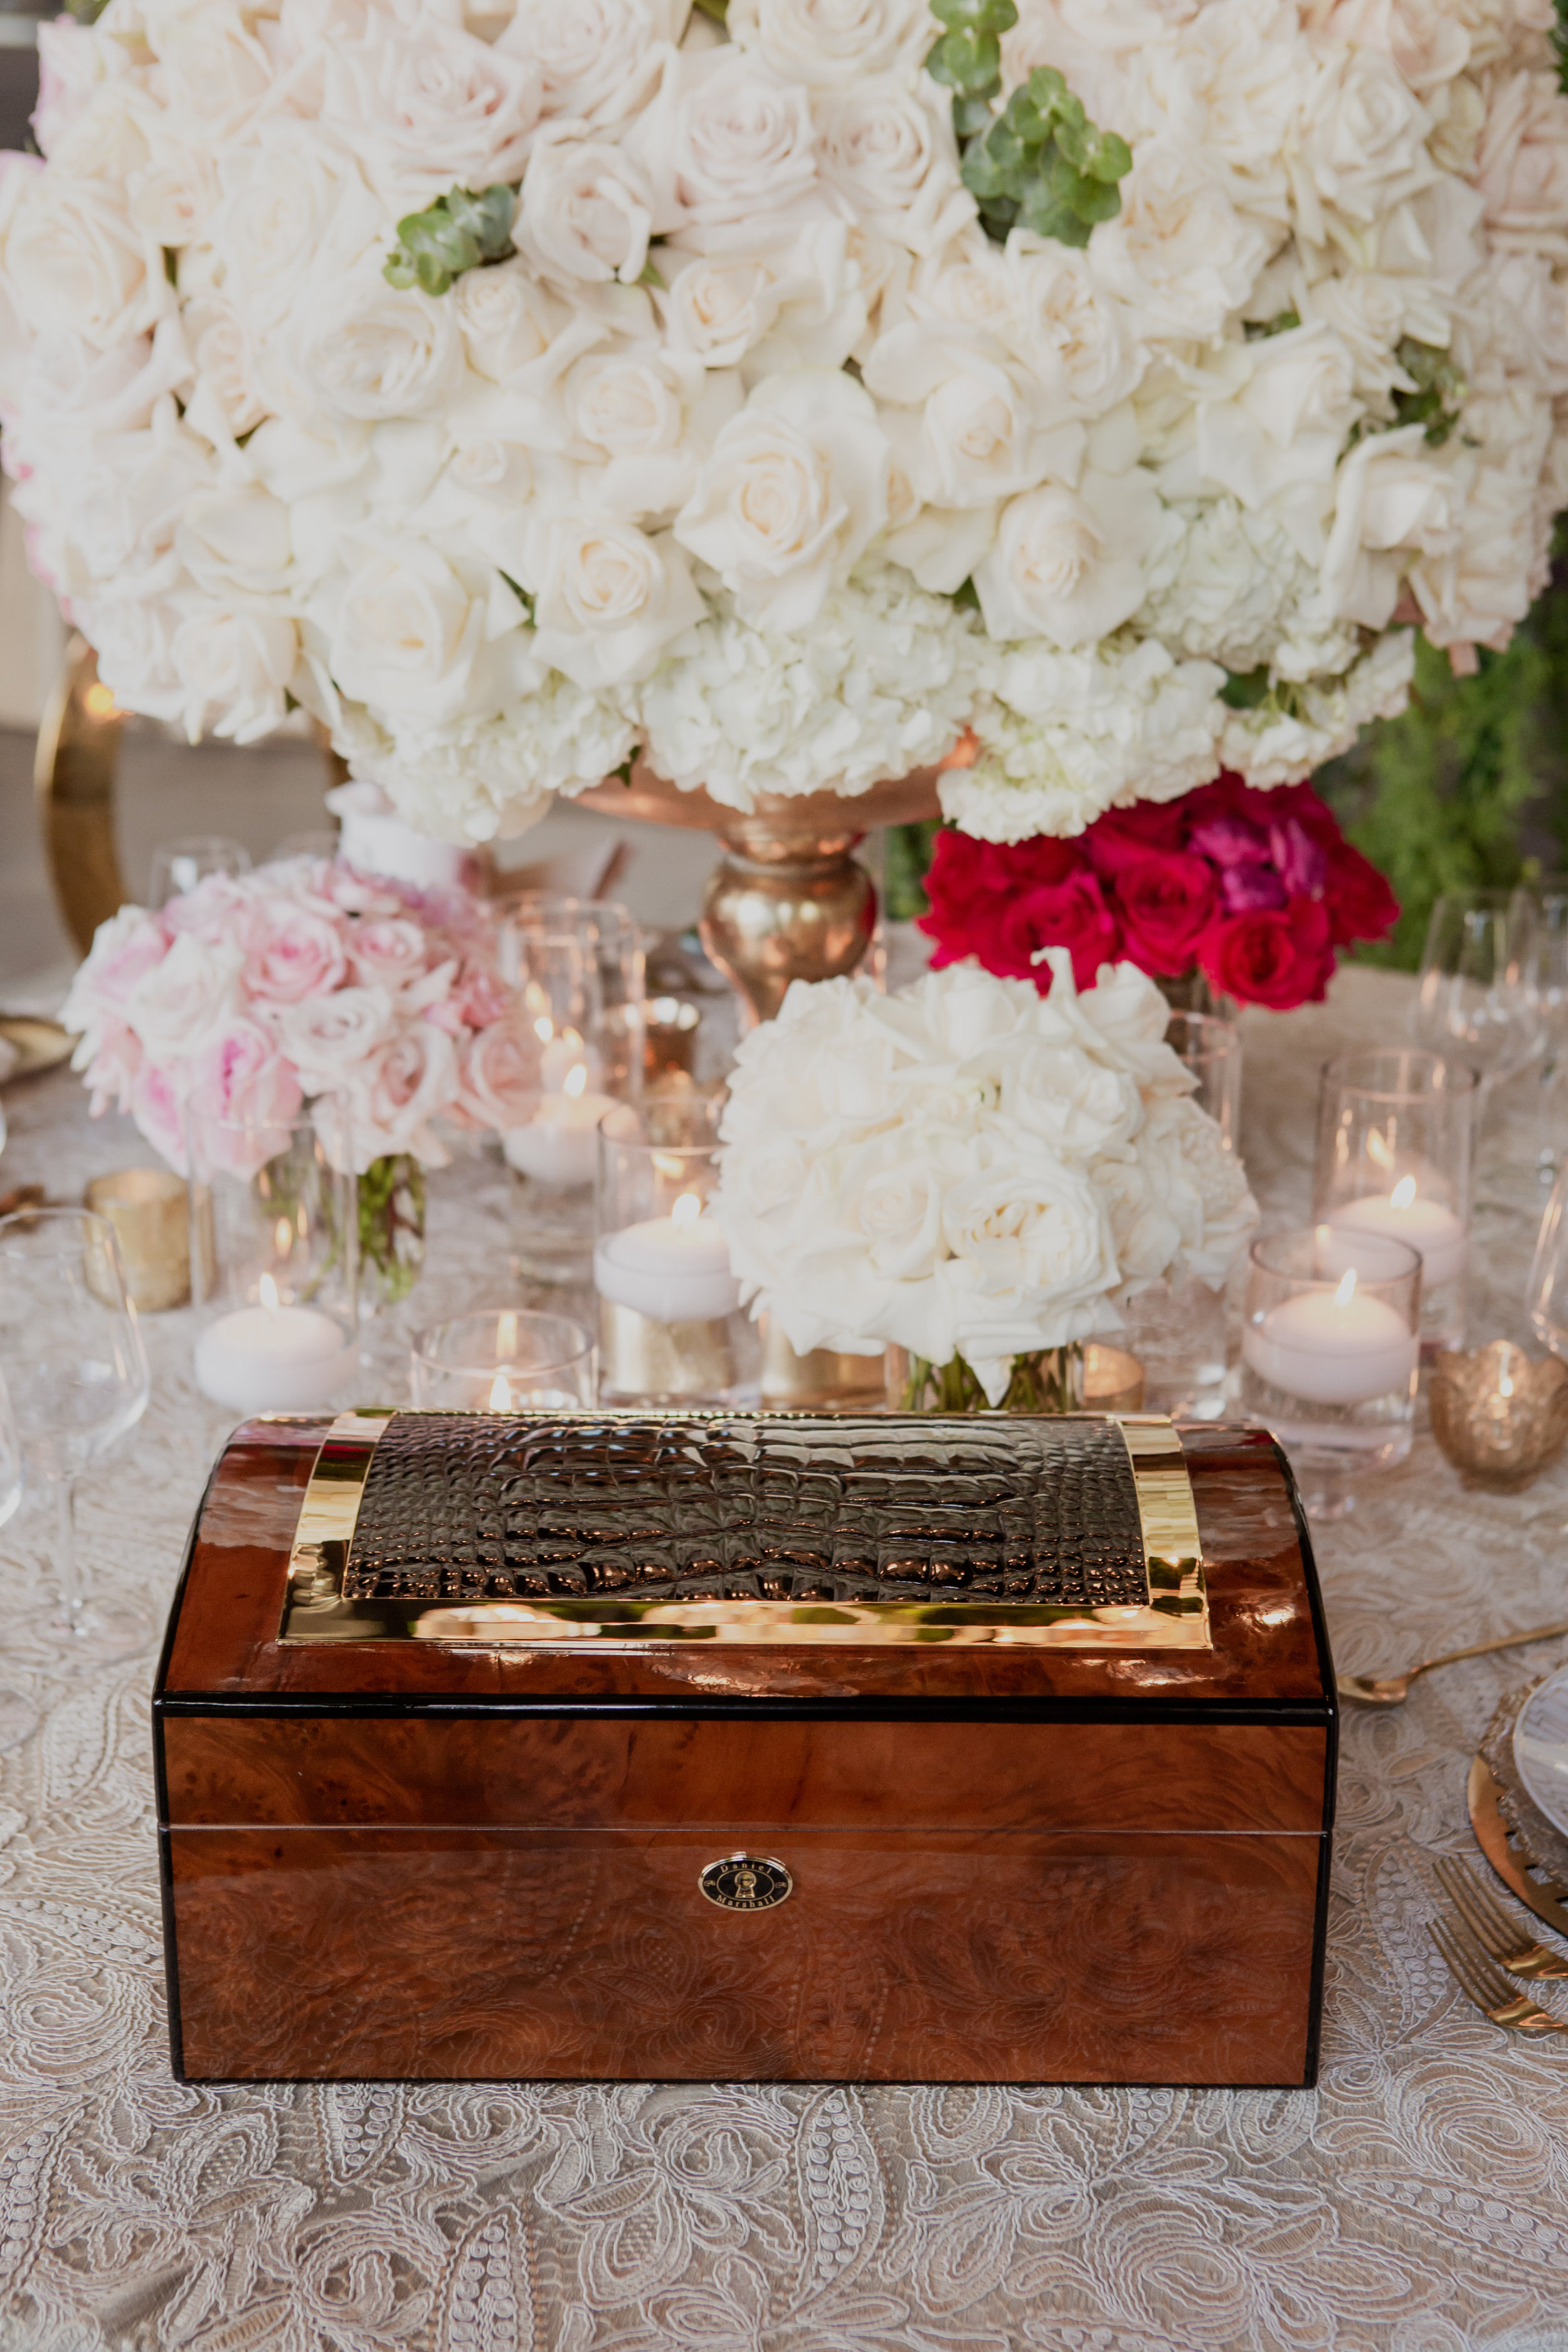 Hermes humidor with exotic skin inlay. Las Vegas Wedding Planner & Event Designer  Andrea Eppolito Events  · Photography by  Adam Frazier Photo  · Video by  M Place Productions  · Floral & Decor by  DBD Las Vegas  · Venue  ARIA Primrose Ballroom  · Cigar Band by  Royal Cigar Company  and  Jason of Beverly Hills  · Beauty by  Glammed Up Las Vegas  · Dress by  Vera Wang  · Salon  Couture Bride Las Vegas  · Shoes  Bella Belle Shoes  · Bride  Katrina May Armenta  · Groom  Lucas Cuevas